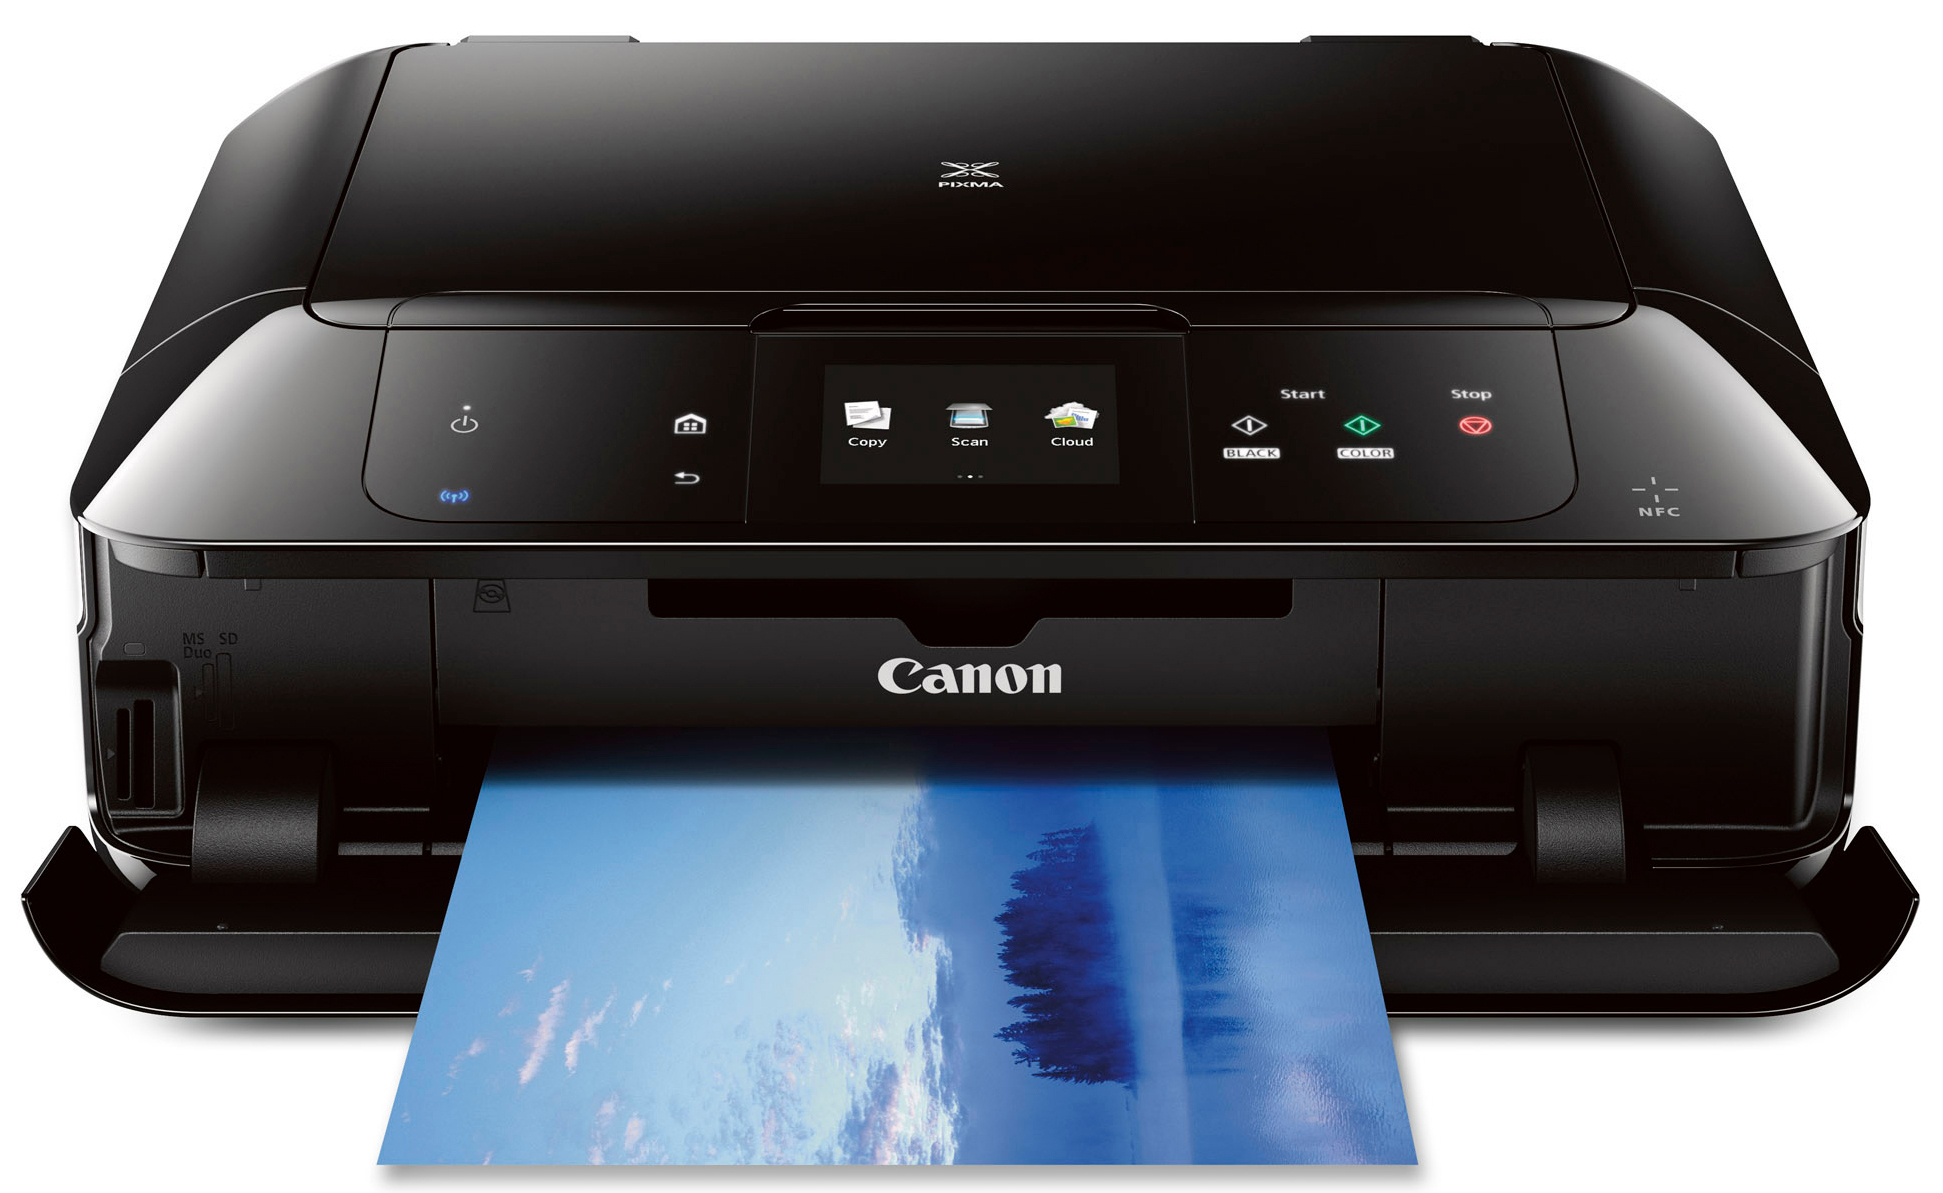 Canon Wireless Photo All-in-One Inkjet Printer w/ AirPrint + Adobe Photoshop Elements 12 $98 shipped ($239 value)